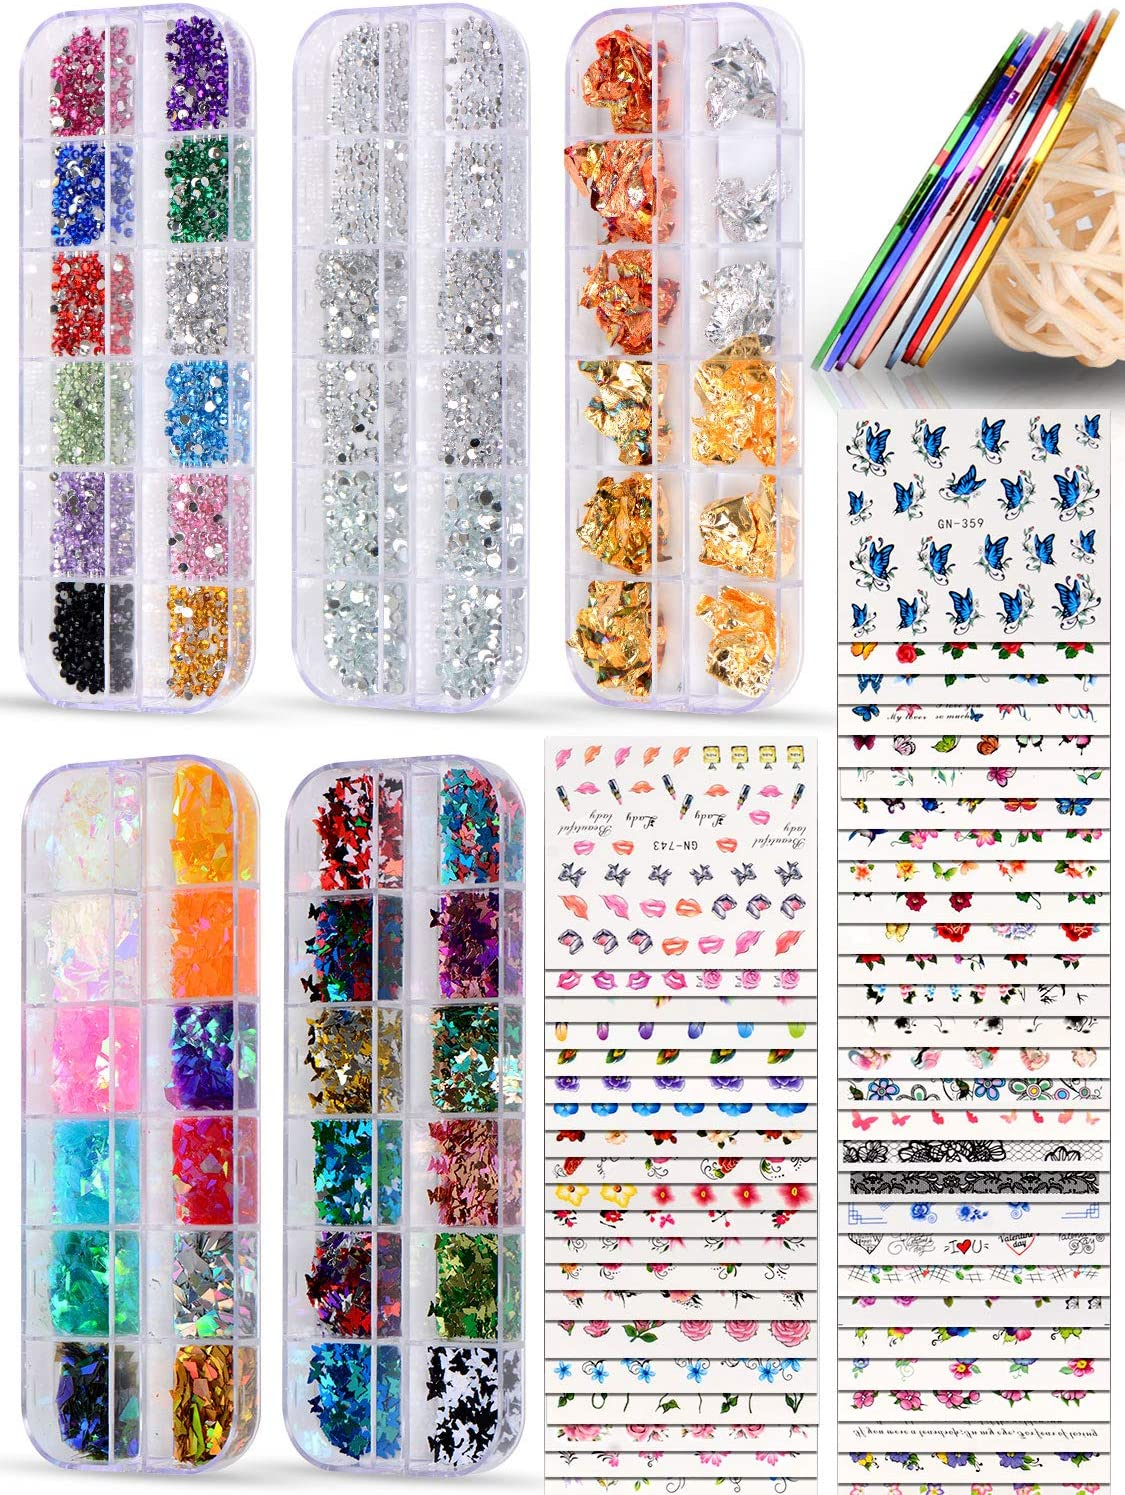 Spearlcable Nail Art Decoration Kit,50 Sheets Nail Stickers Crystal Rhinestones Set Holographic Butterfly Glitter Nail Foil Nail Tape Strips Iridescent Nail Sequins Flake for Acrylic Nail Art: Kitchen & Dining